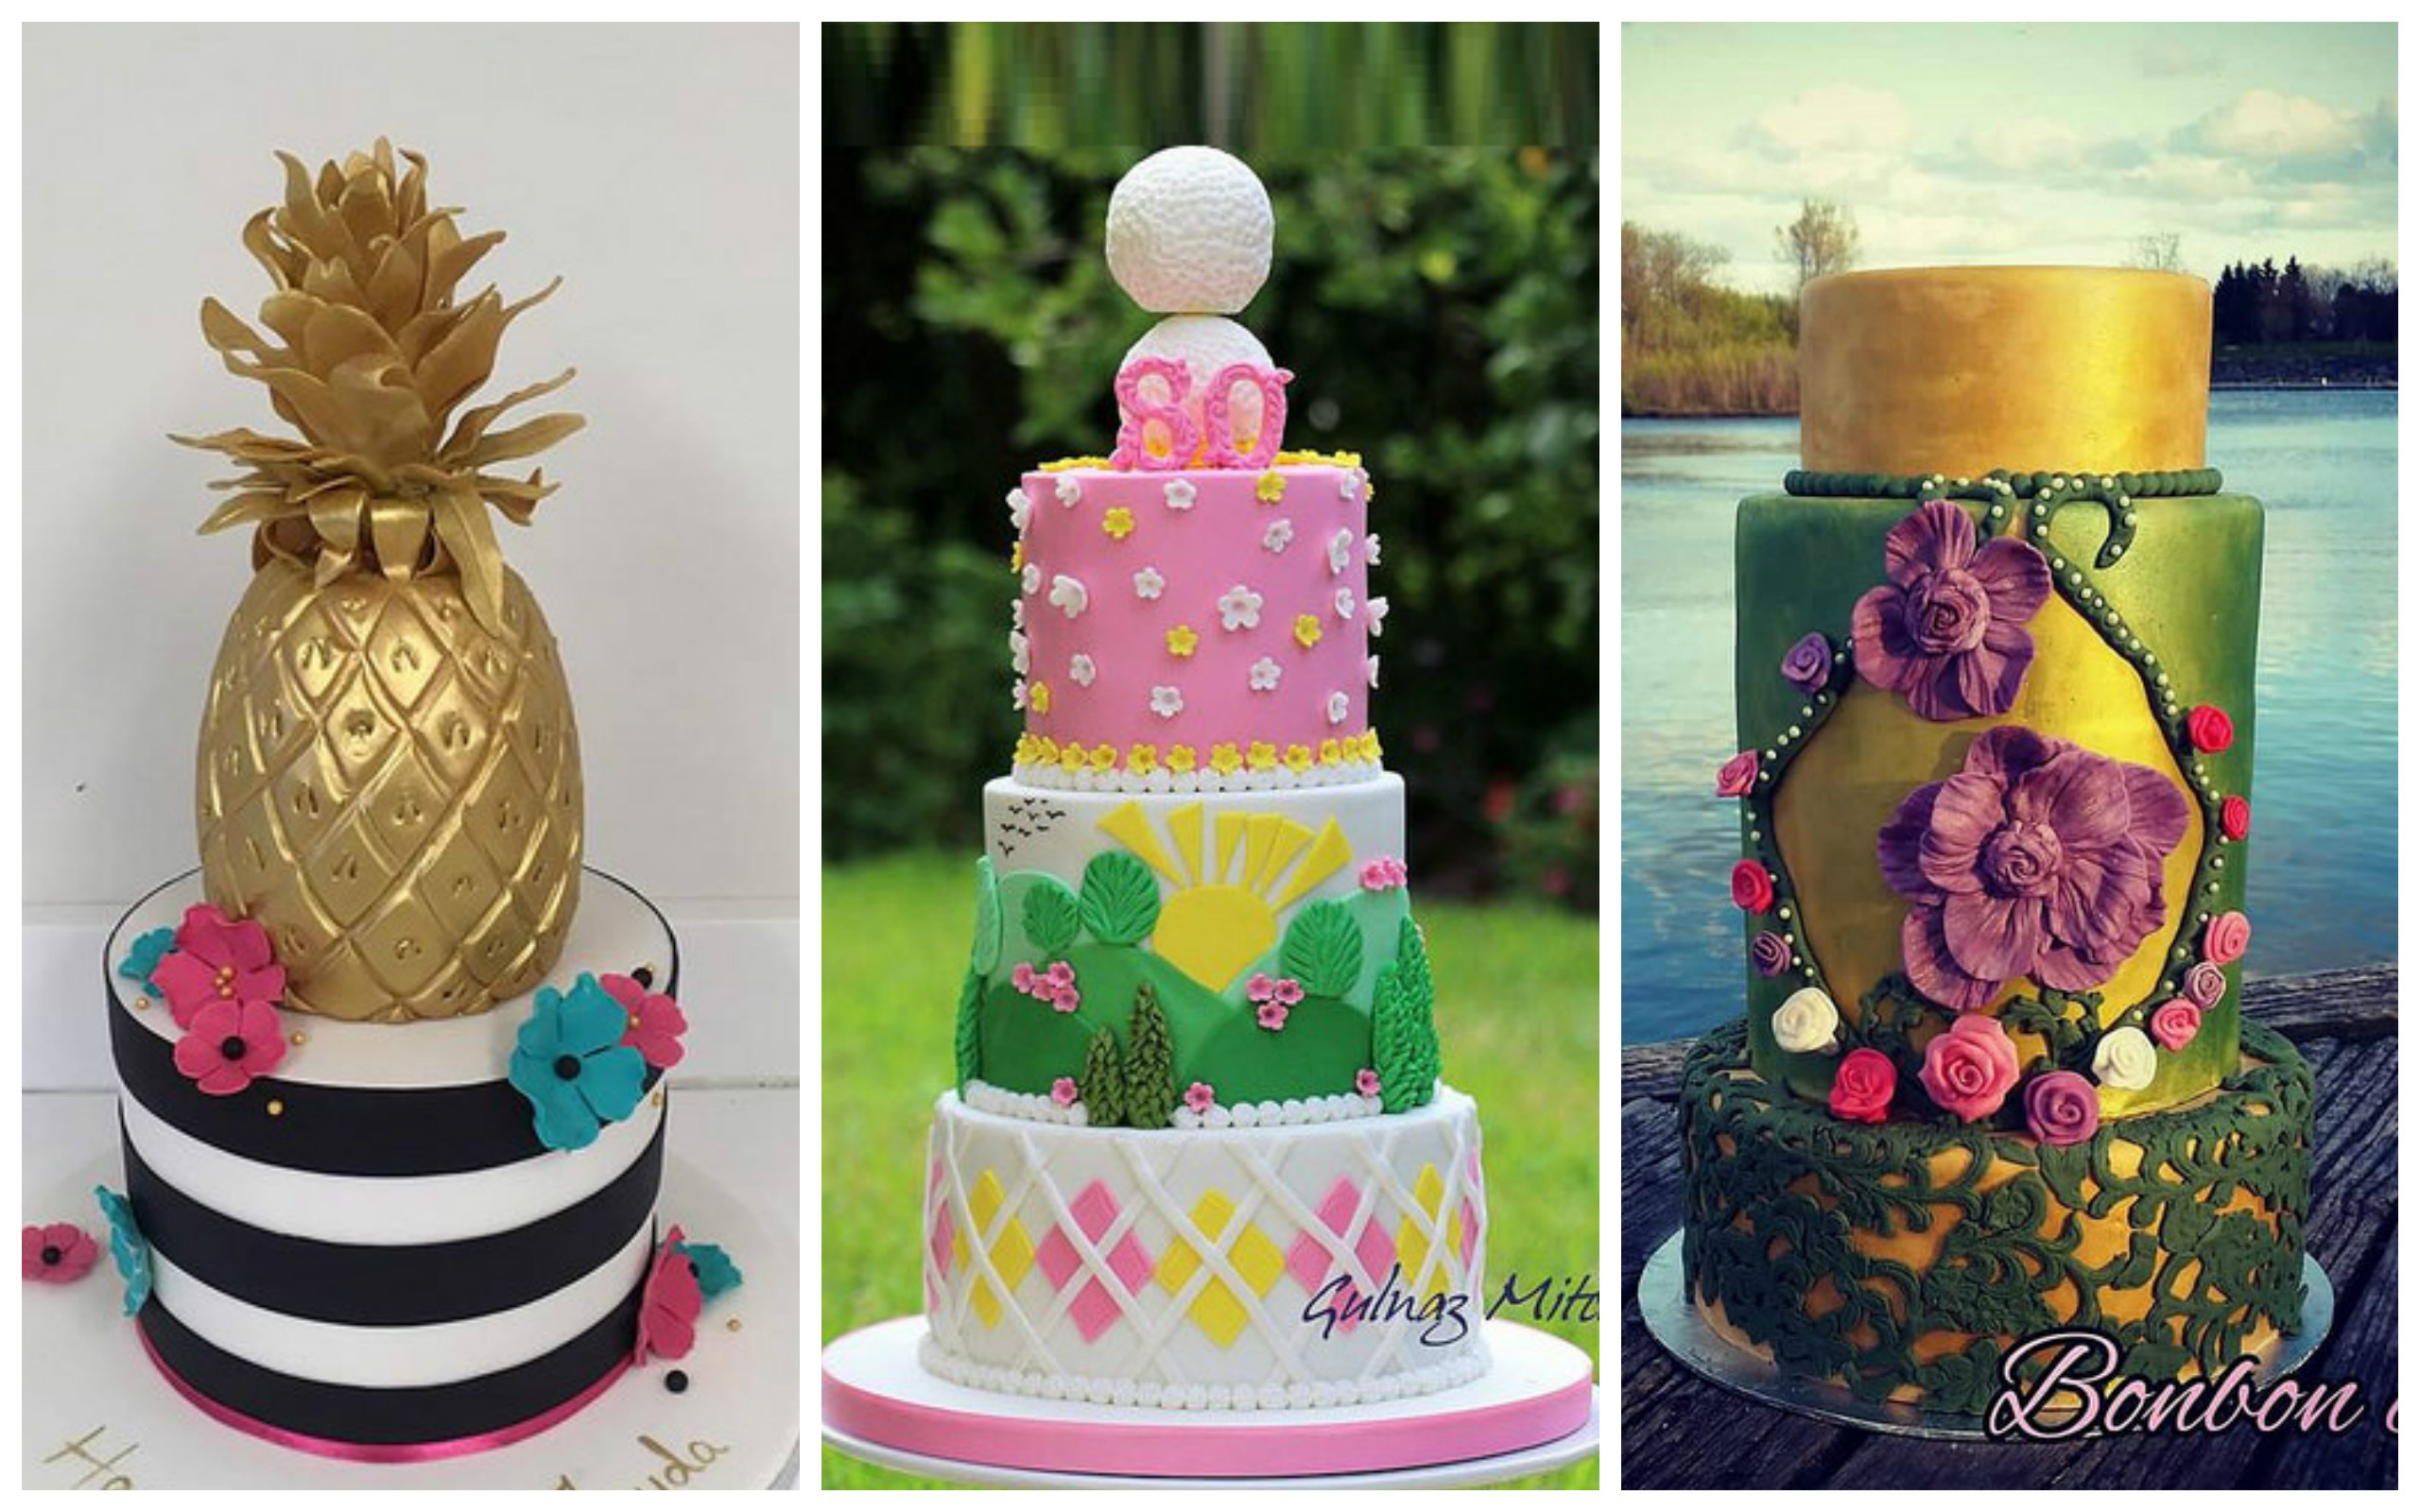 Cake Design Competition : Competition: Designer of the World s Award-Winning Cake